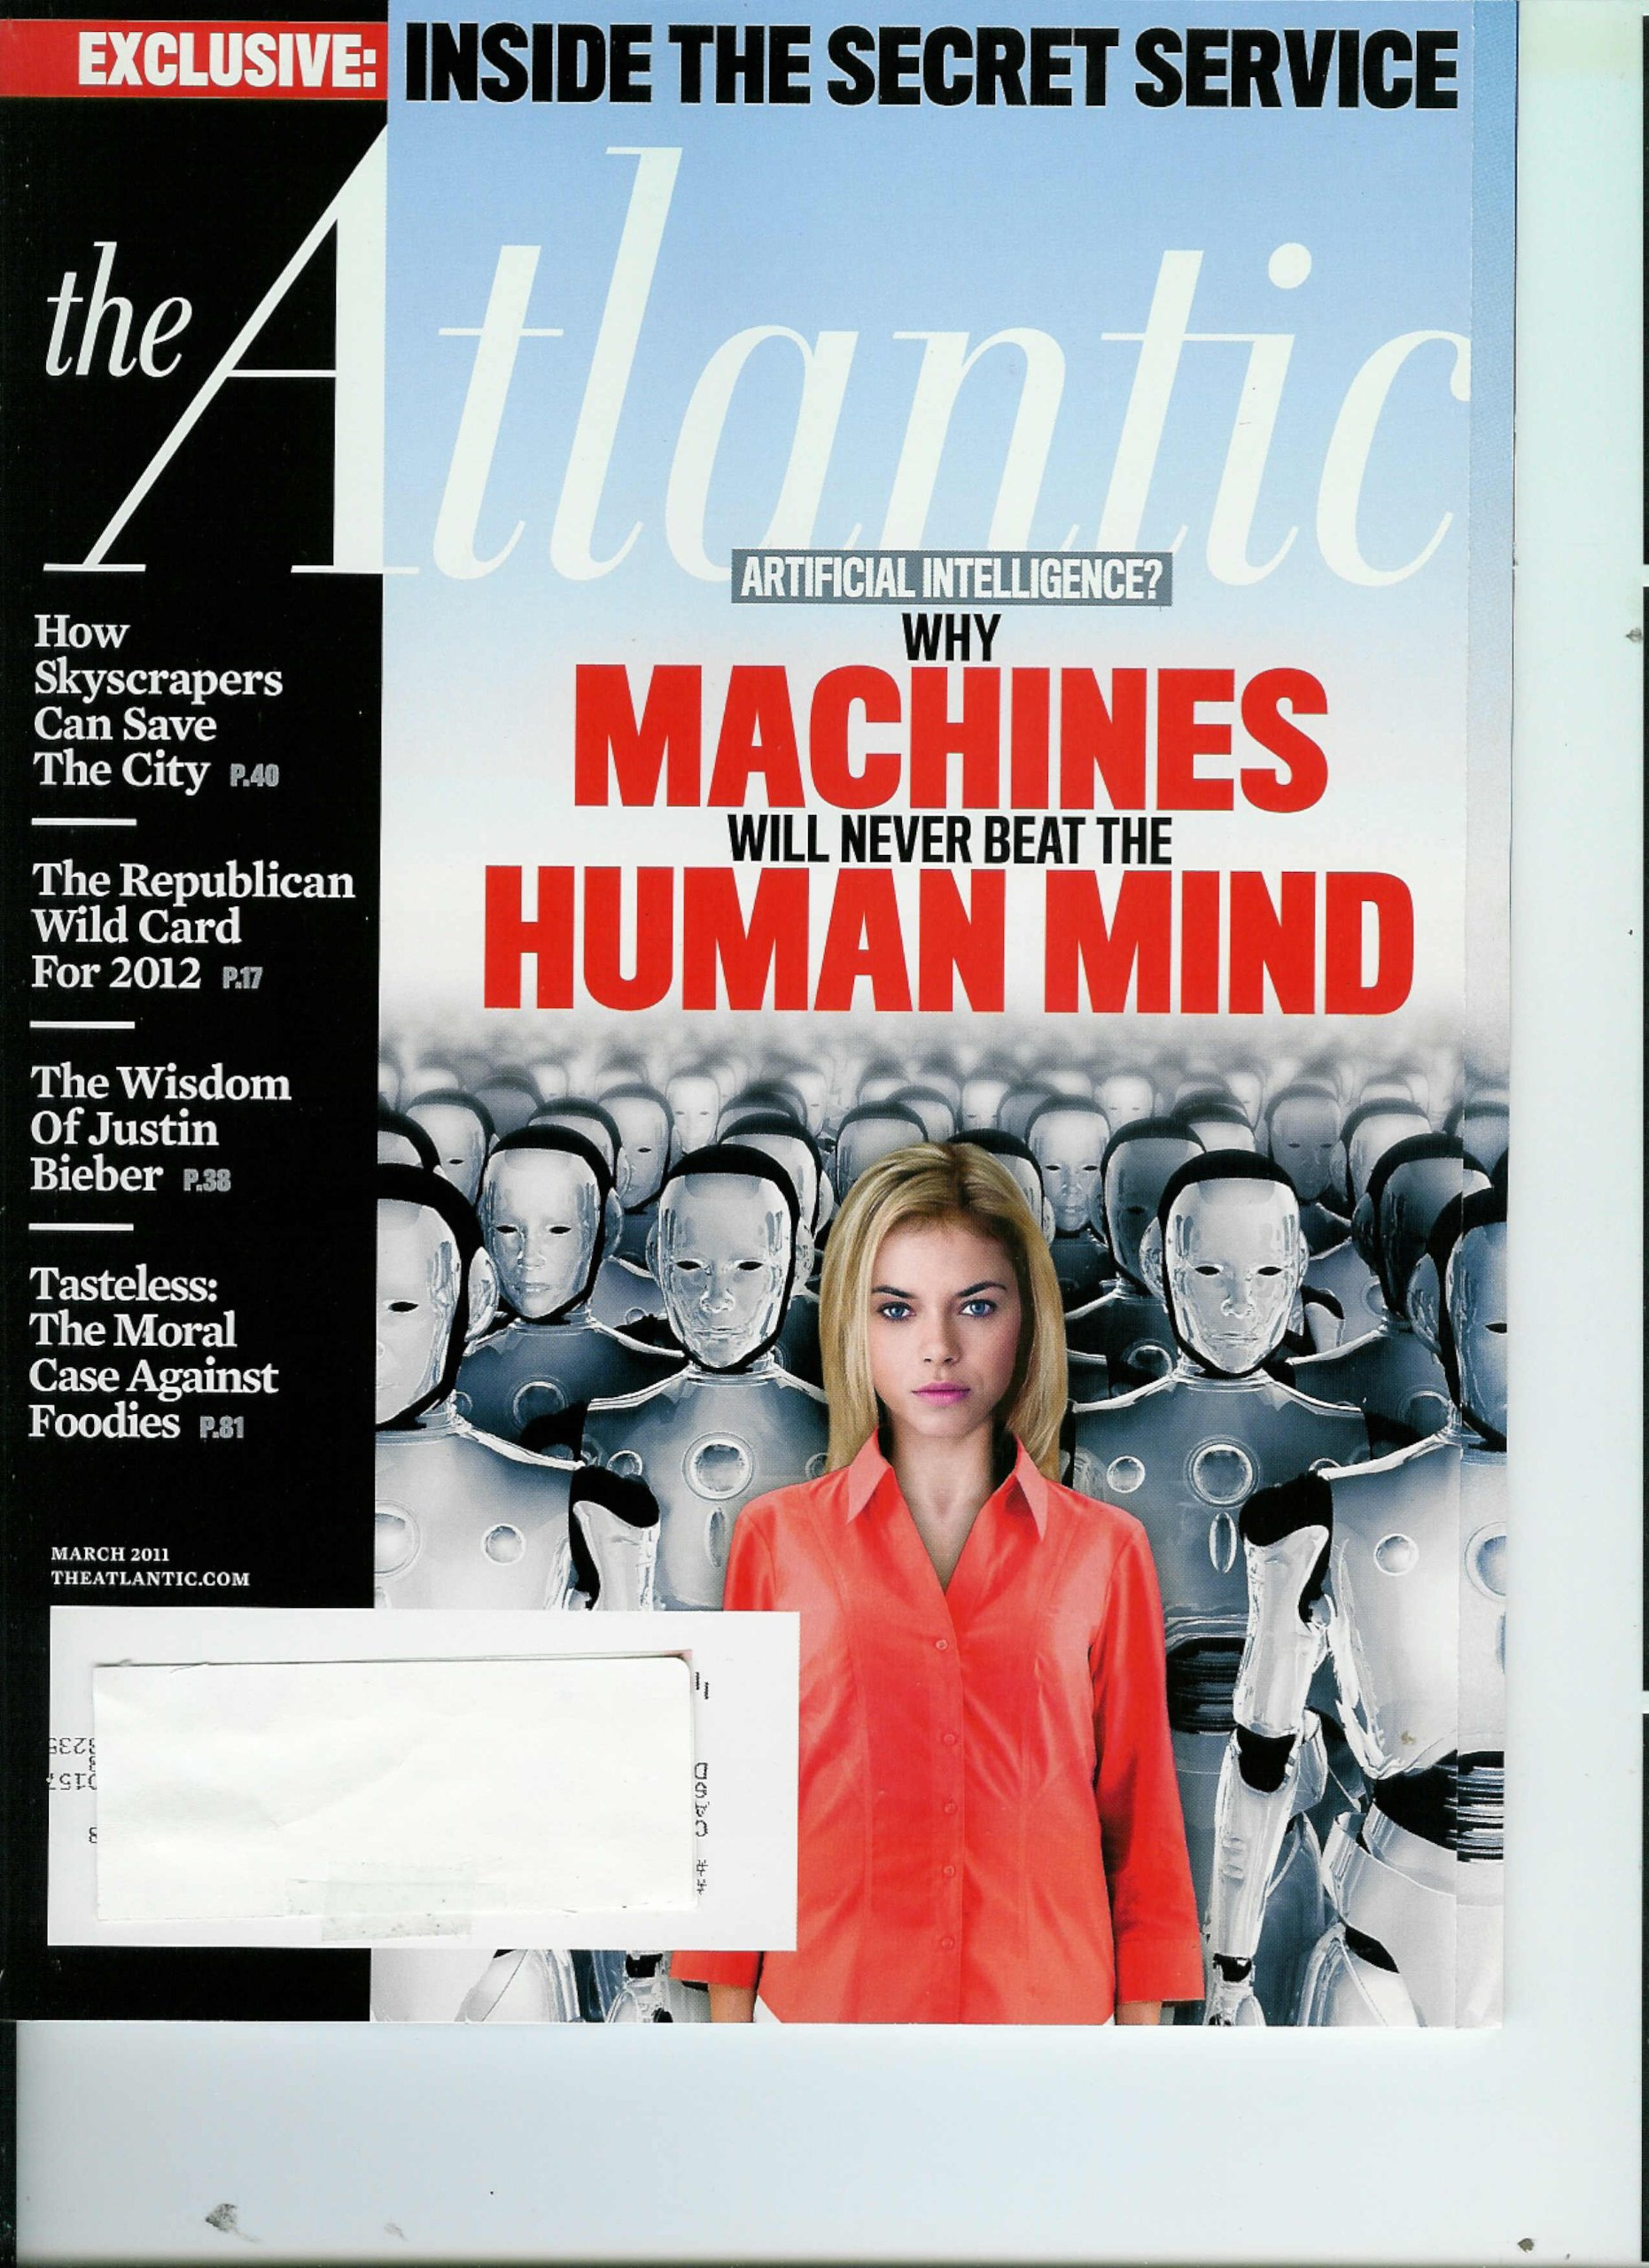 Read Online The Atlantic Monthly Magazine, March 2011 Volume 307, No. 2 Artificial Intelligence?: Why Machines Will Never Beat the Human Mind / Inside the Secret Service / How Skyscrapers Can Save the City ebook